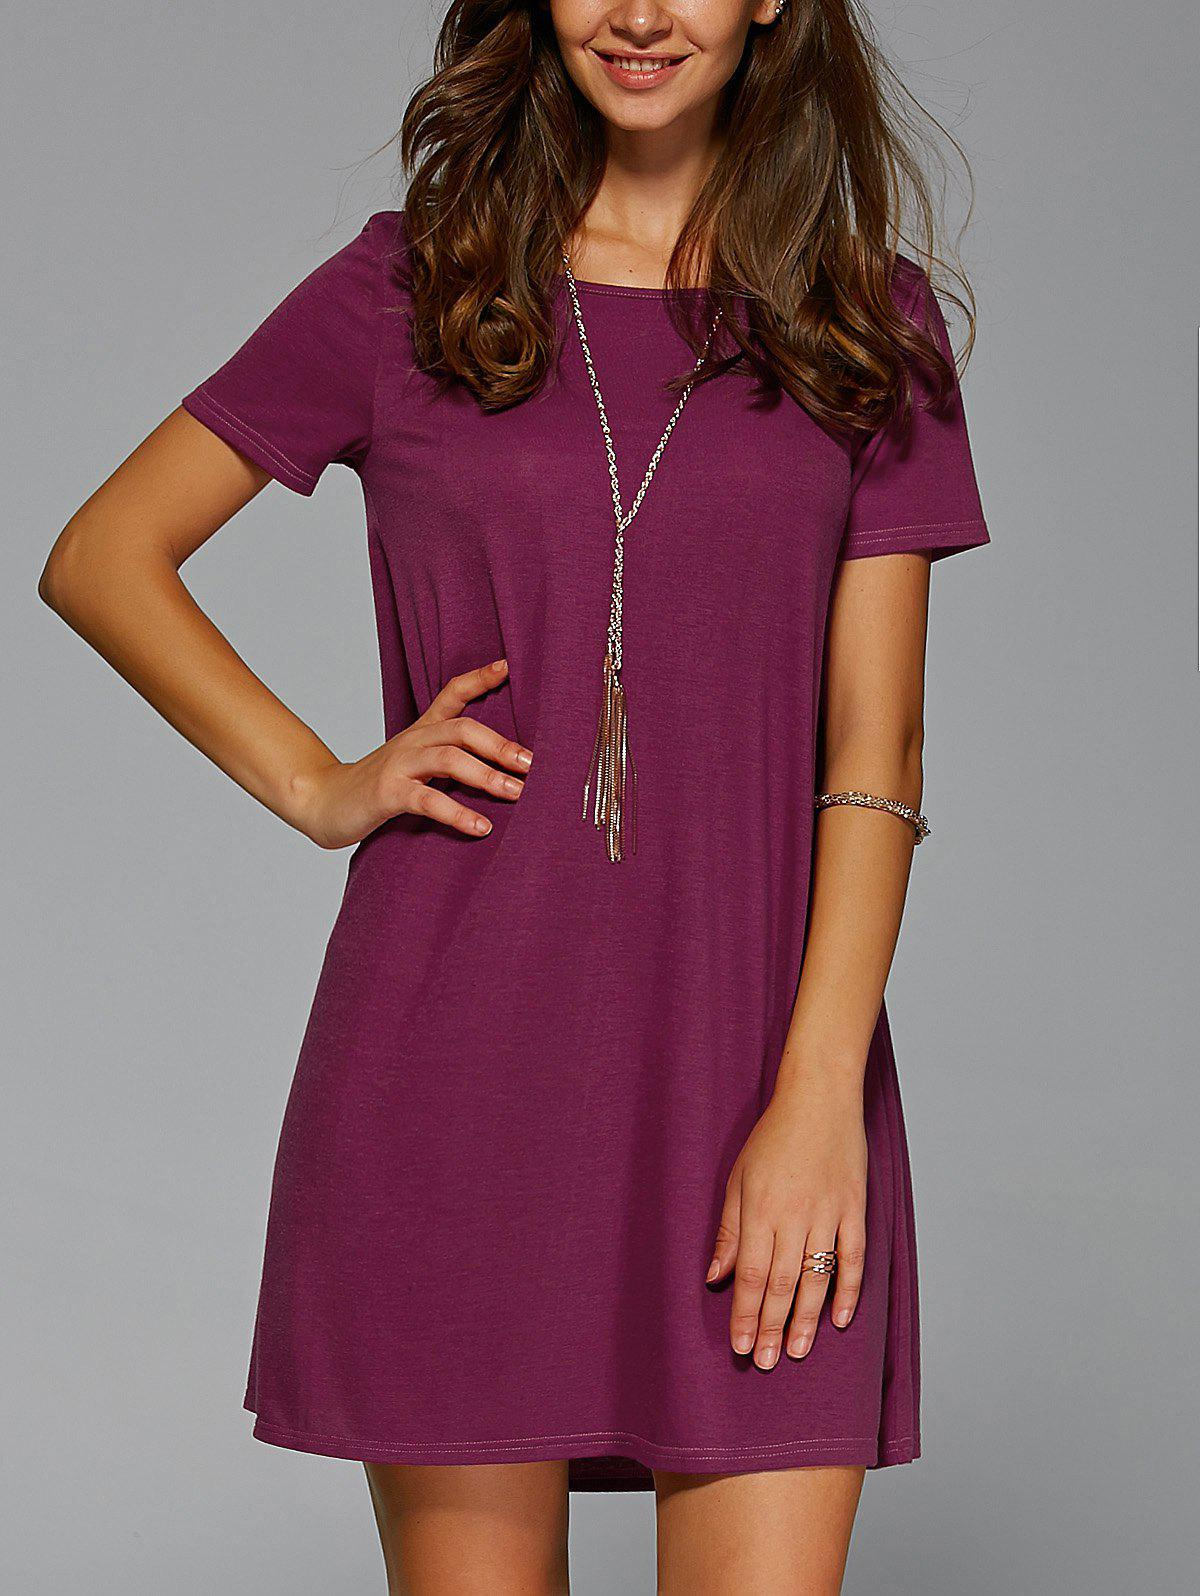 Brief Style Short Sleeve Jewel Neck Dress - DARK RED XL